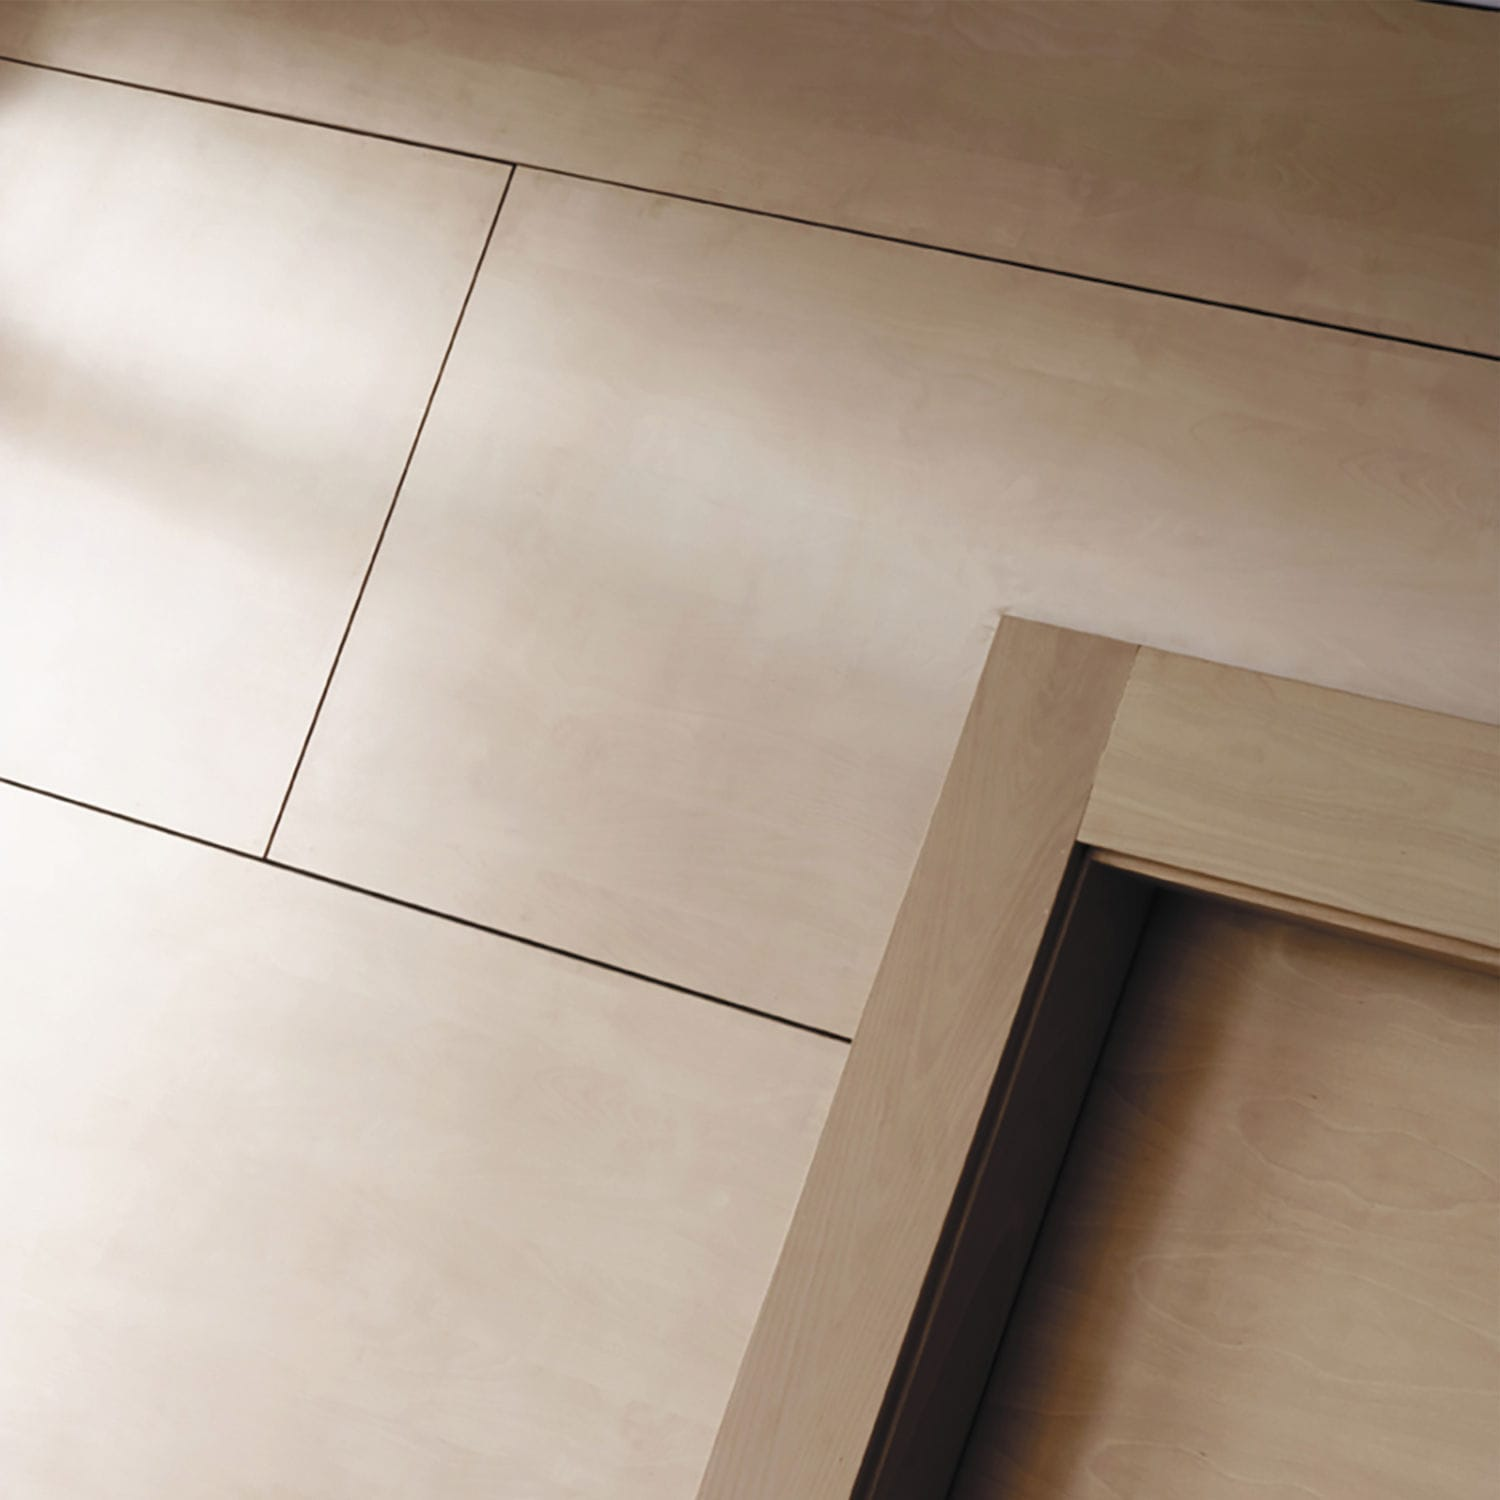 Image of: Ceiling Acoustic Panel Special Plain Ideatec For False Ceilings Wall Mounted Wooden